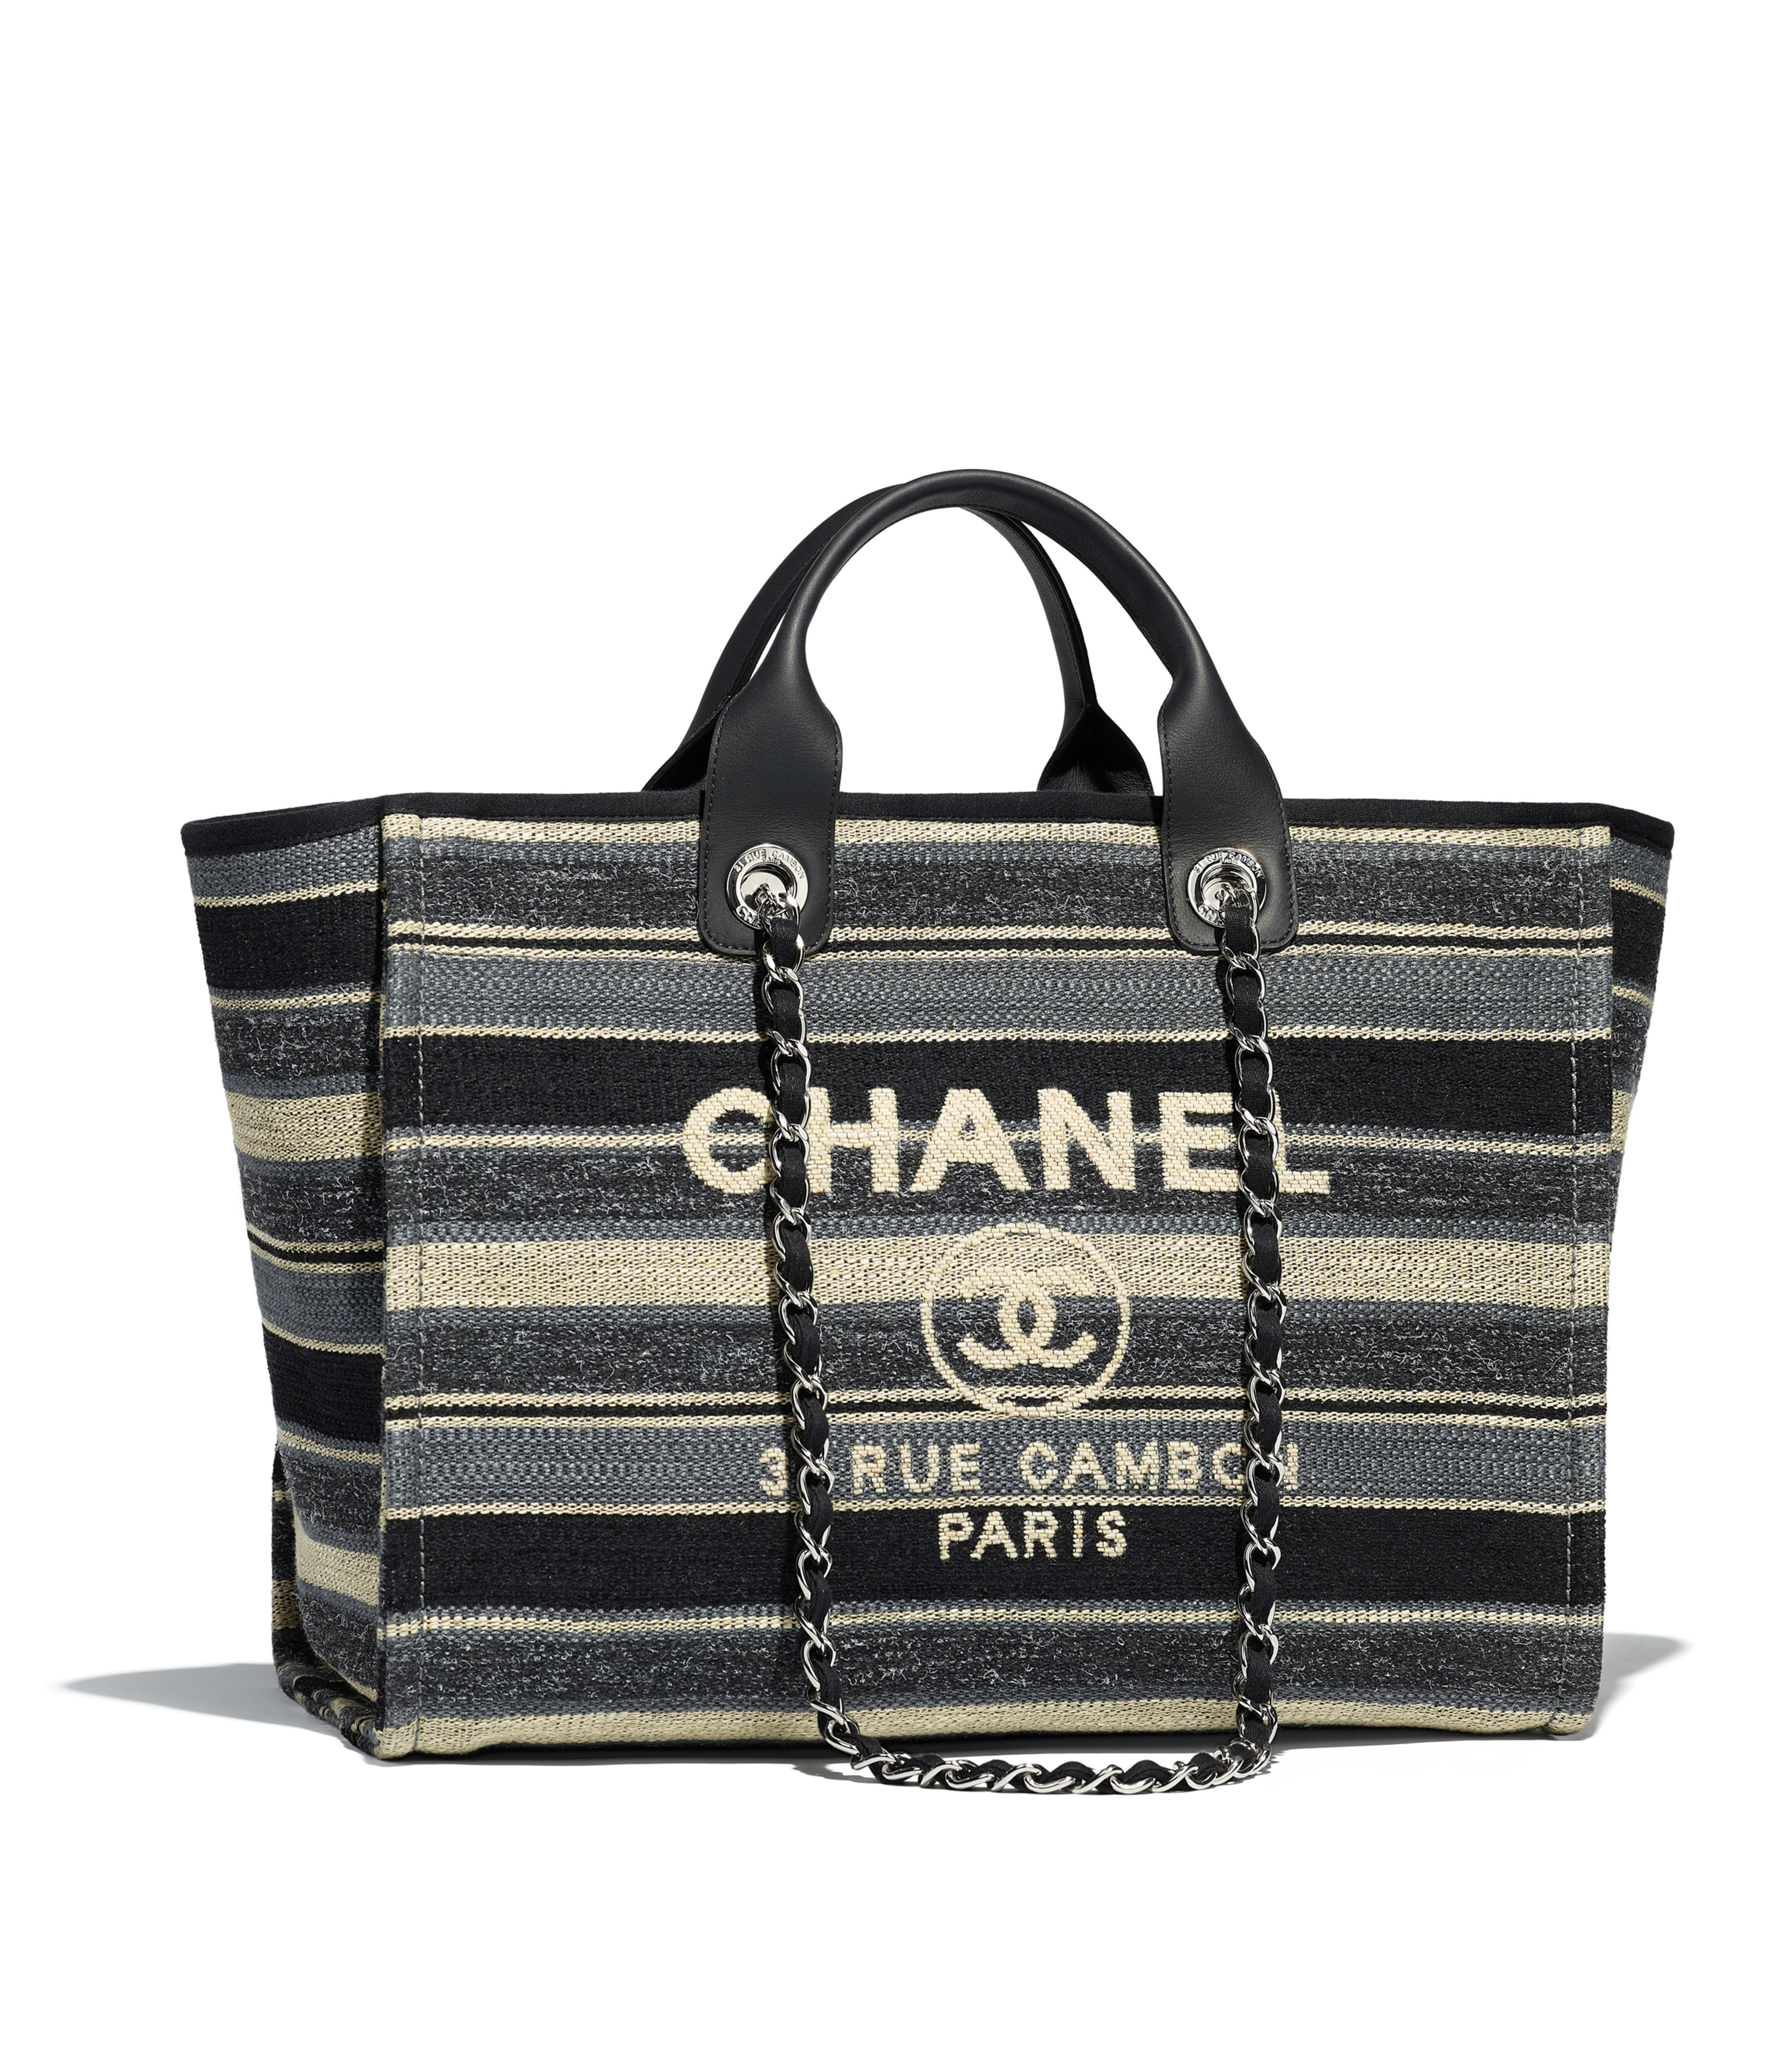 bc3da98bfb5 ... X black here mark chain shoulder bag chain Thoth straw raffia A67001  Y60295 2B180  22 DEAUVILLE MM SHOPPING … Chanel small shopping bag